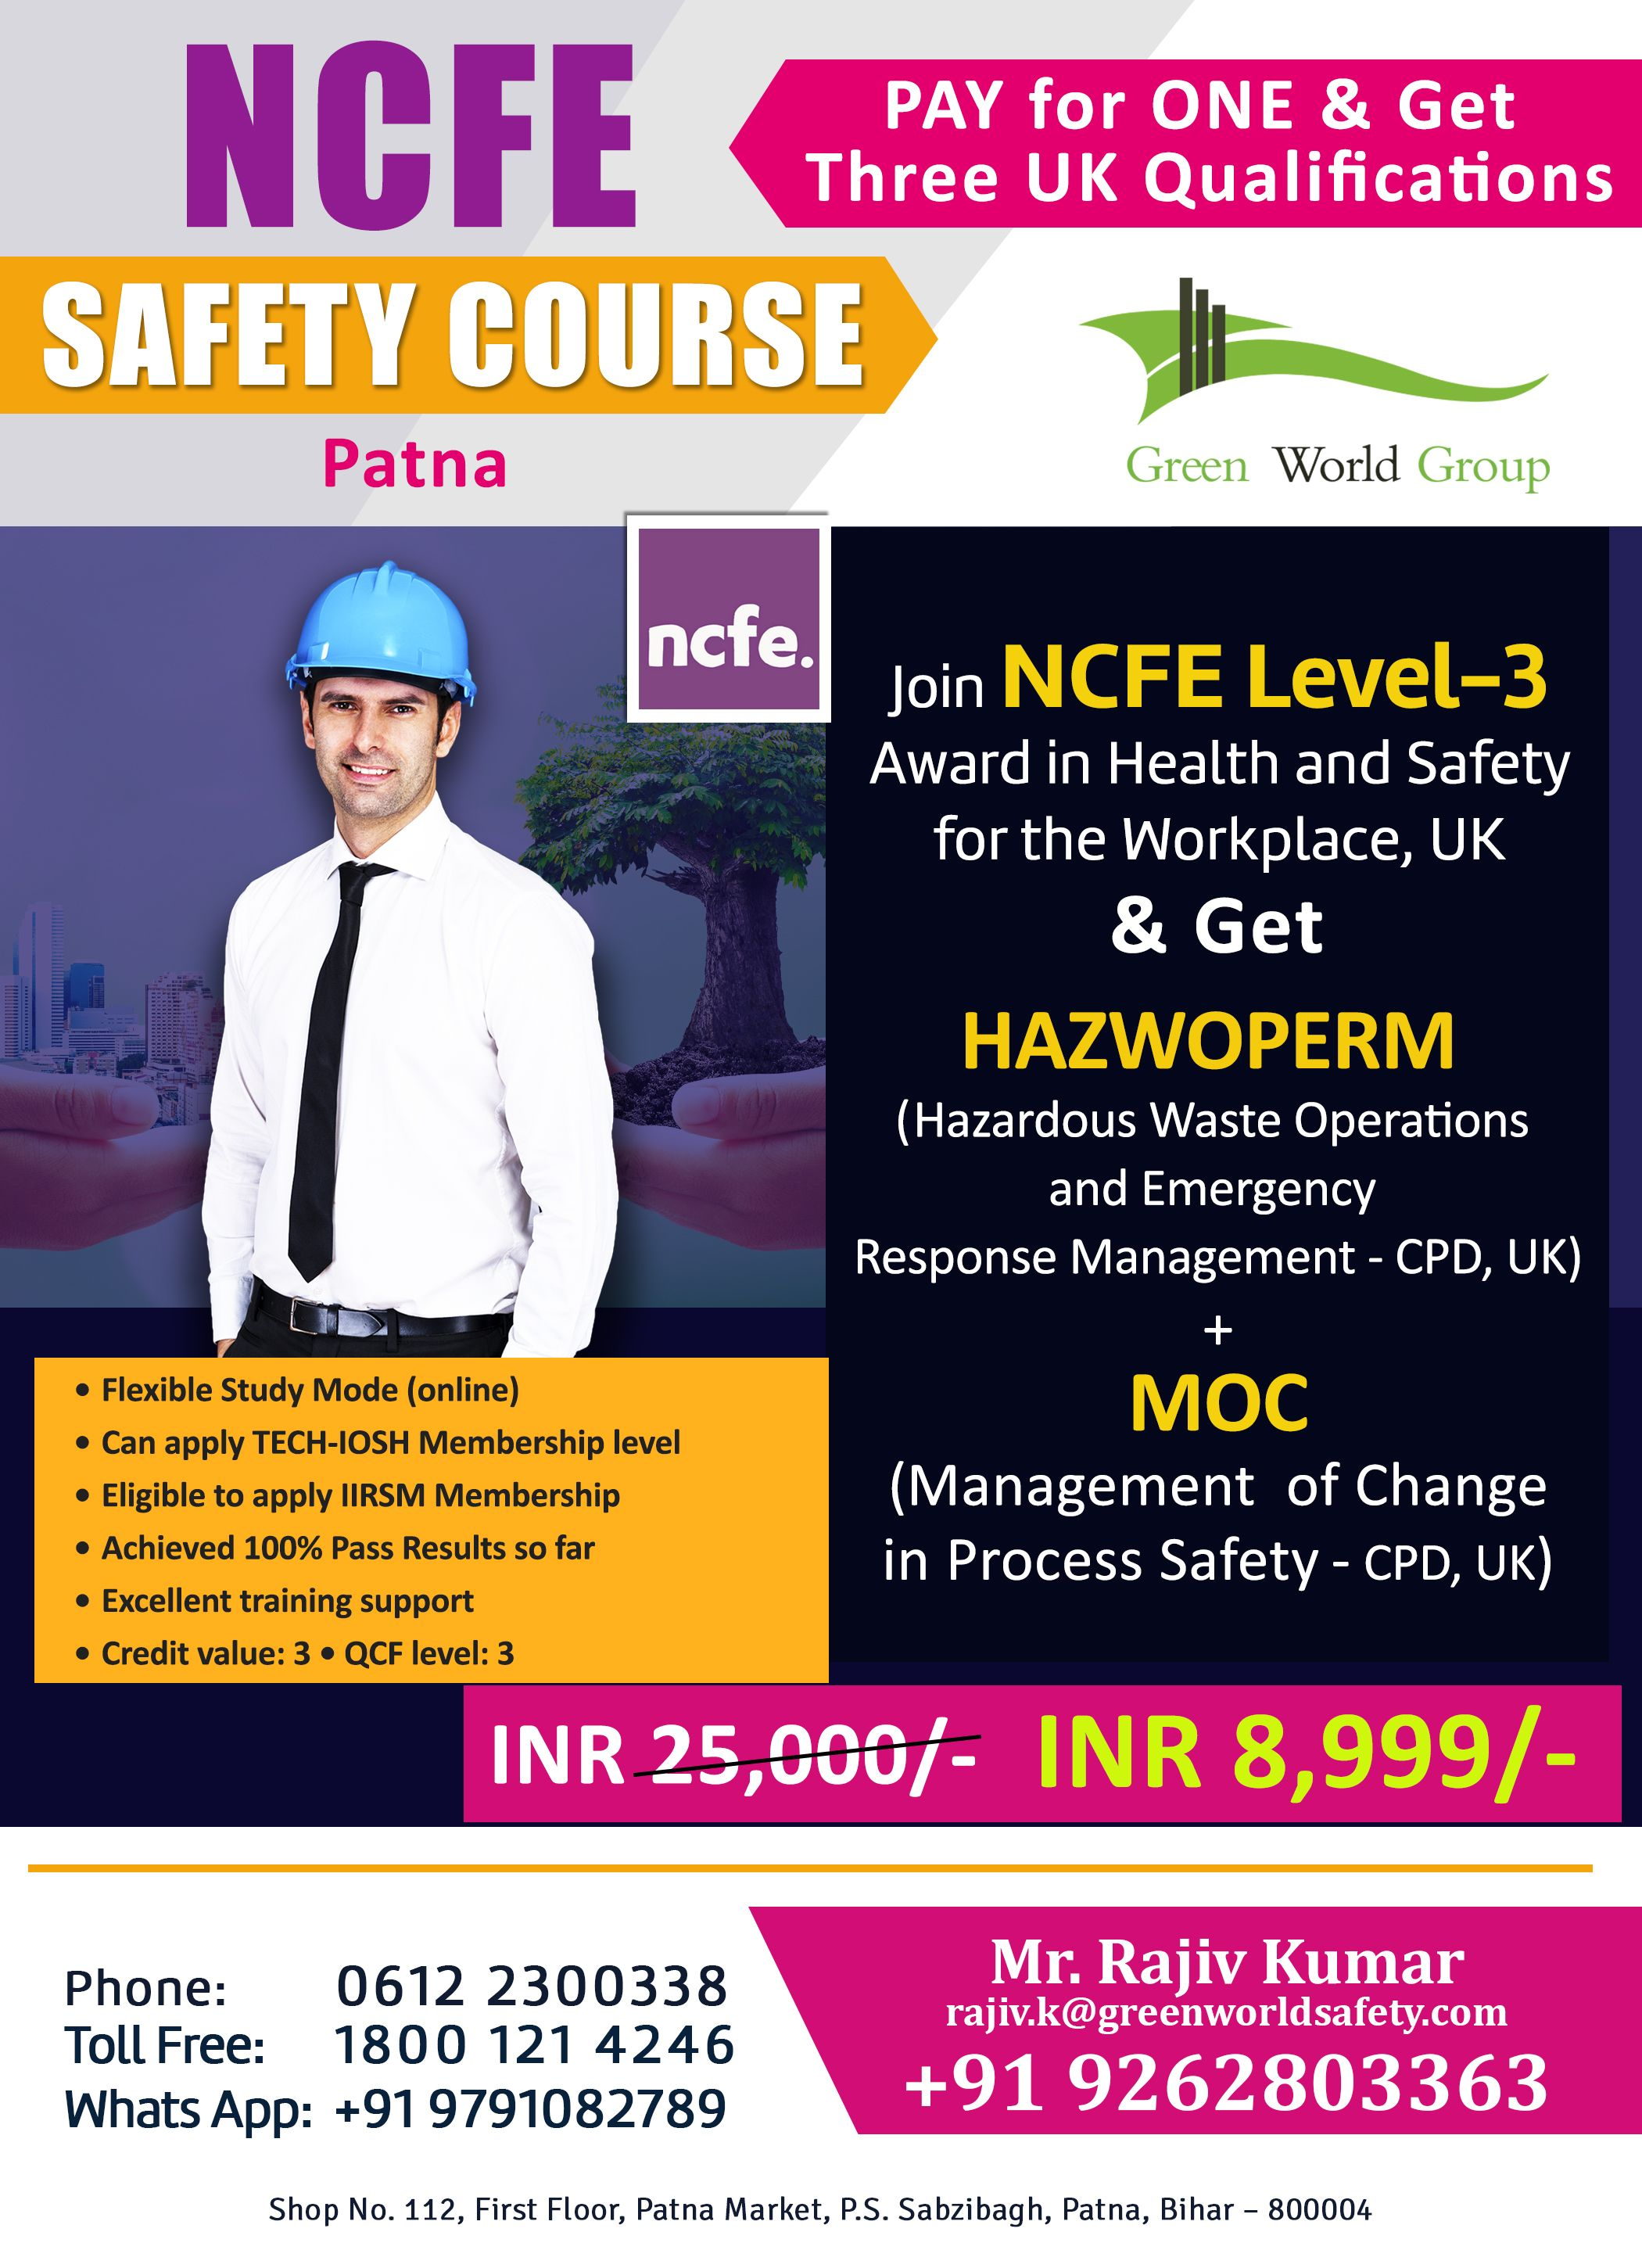 Green World Group is a professional safety educational